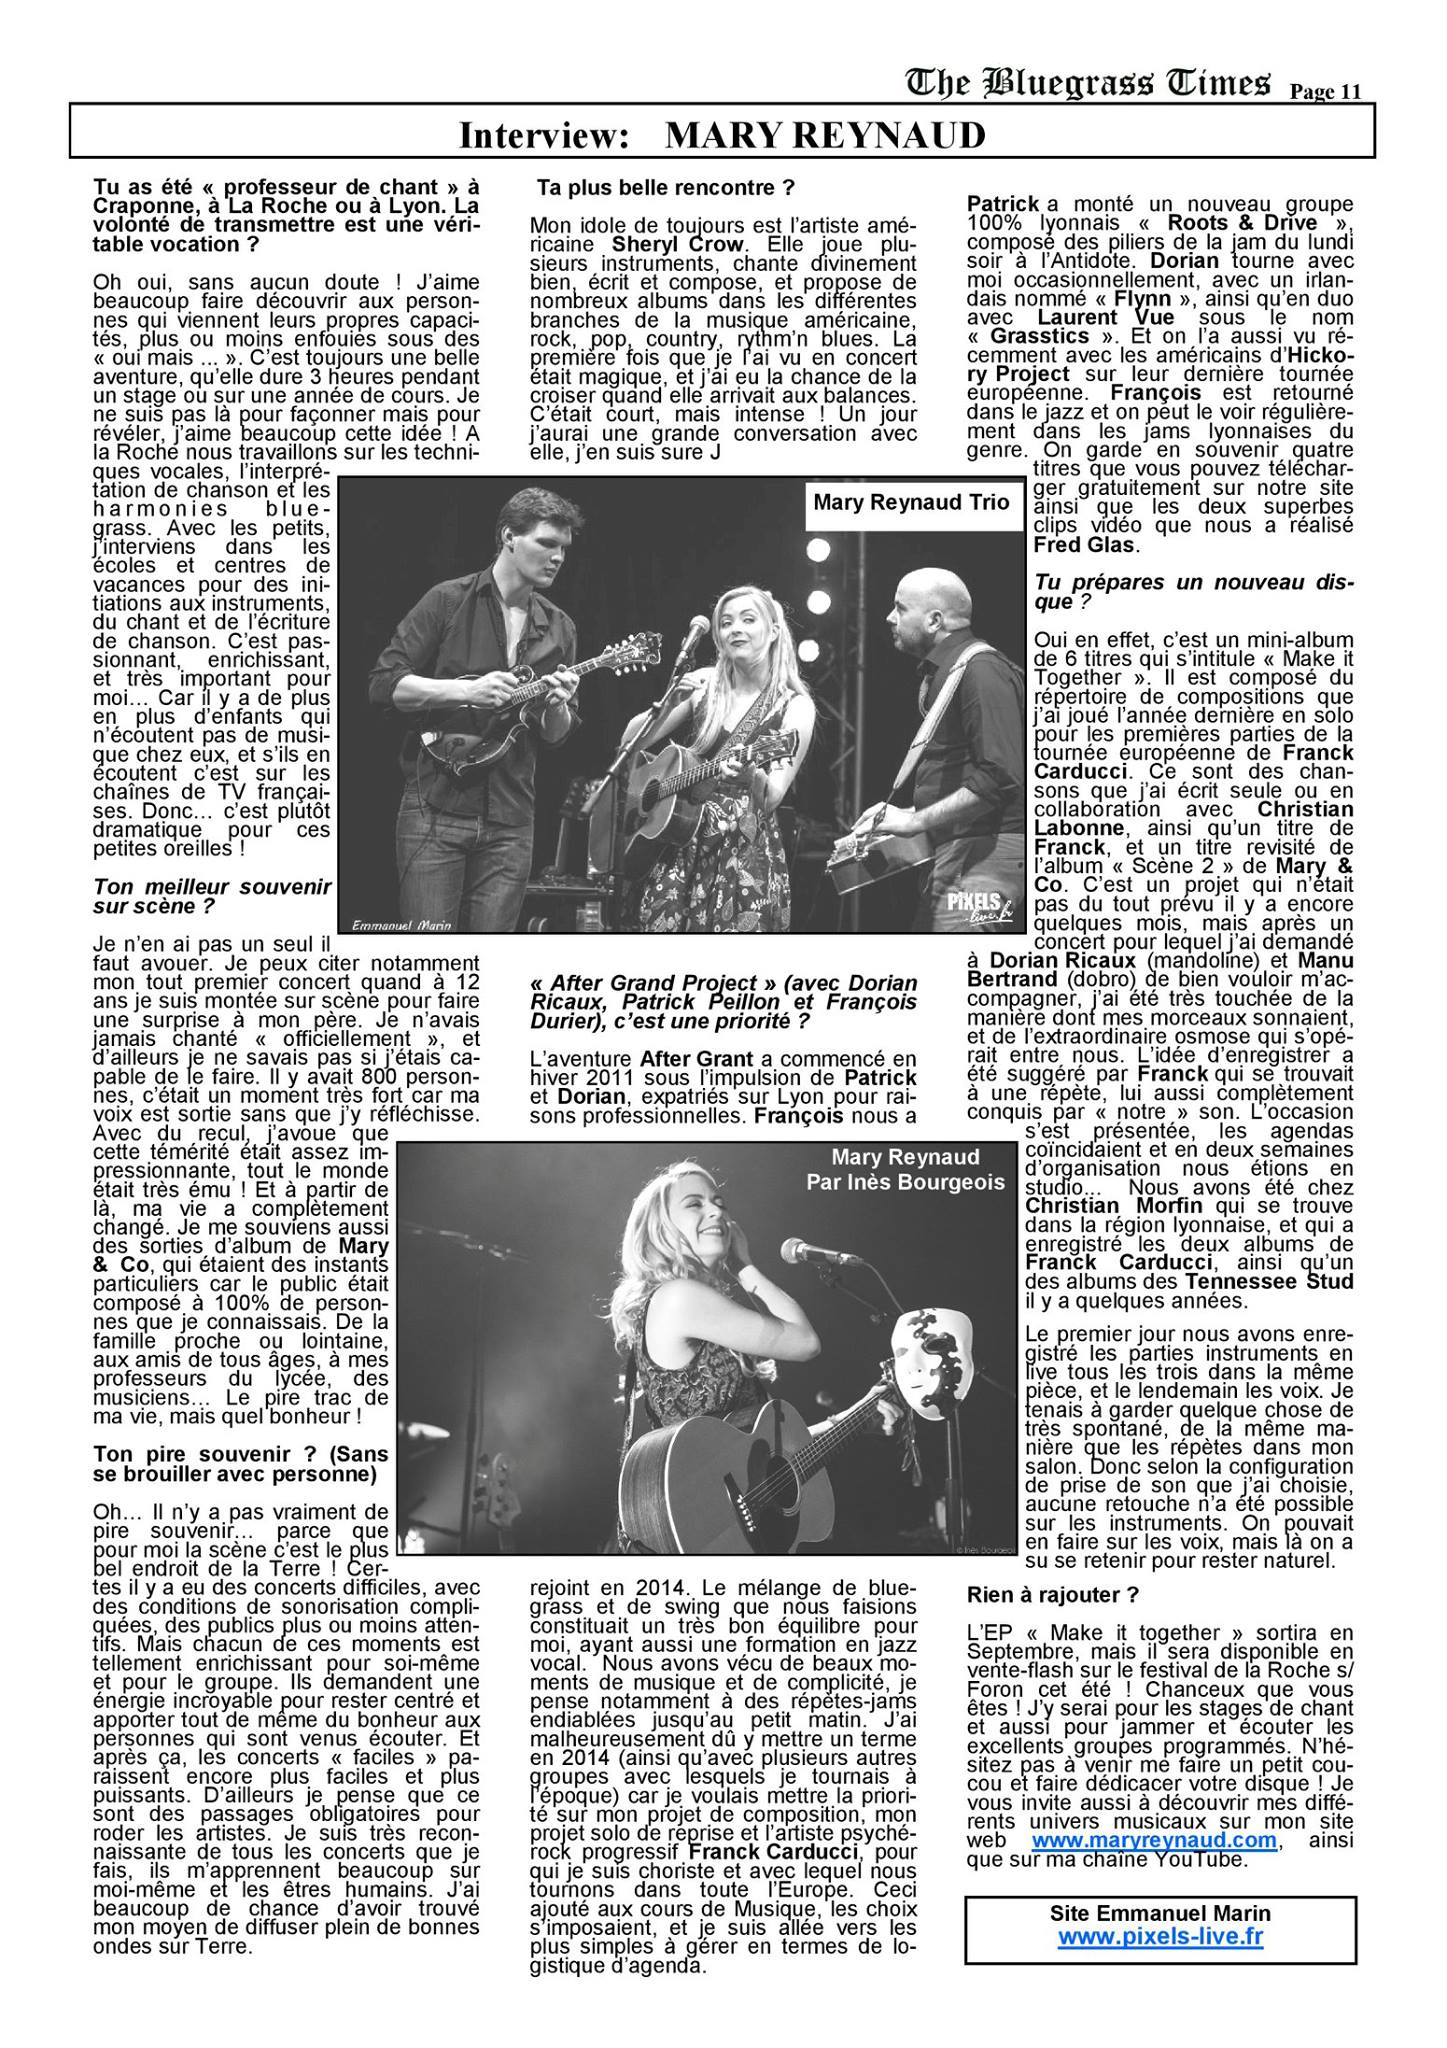 Bluegrass Times - Mary Reynaud